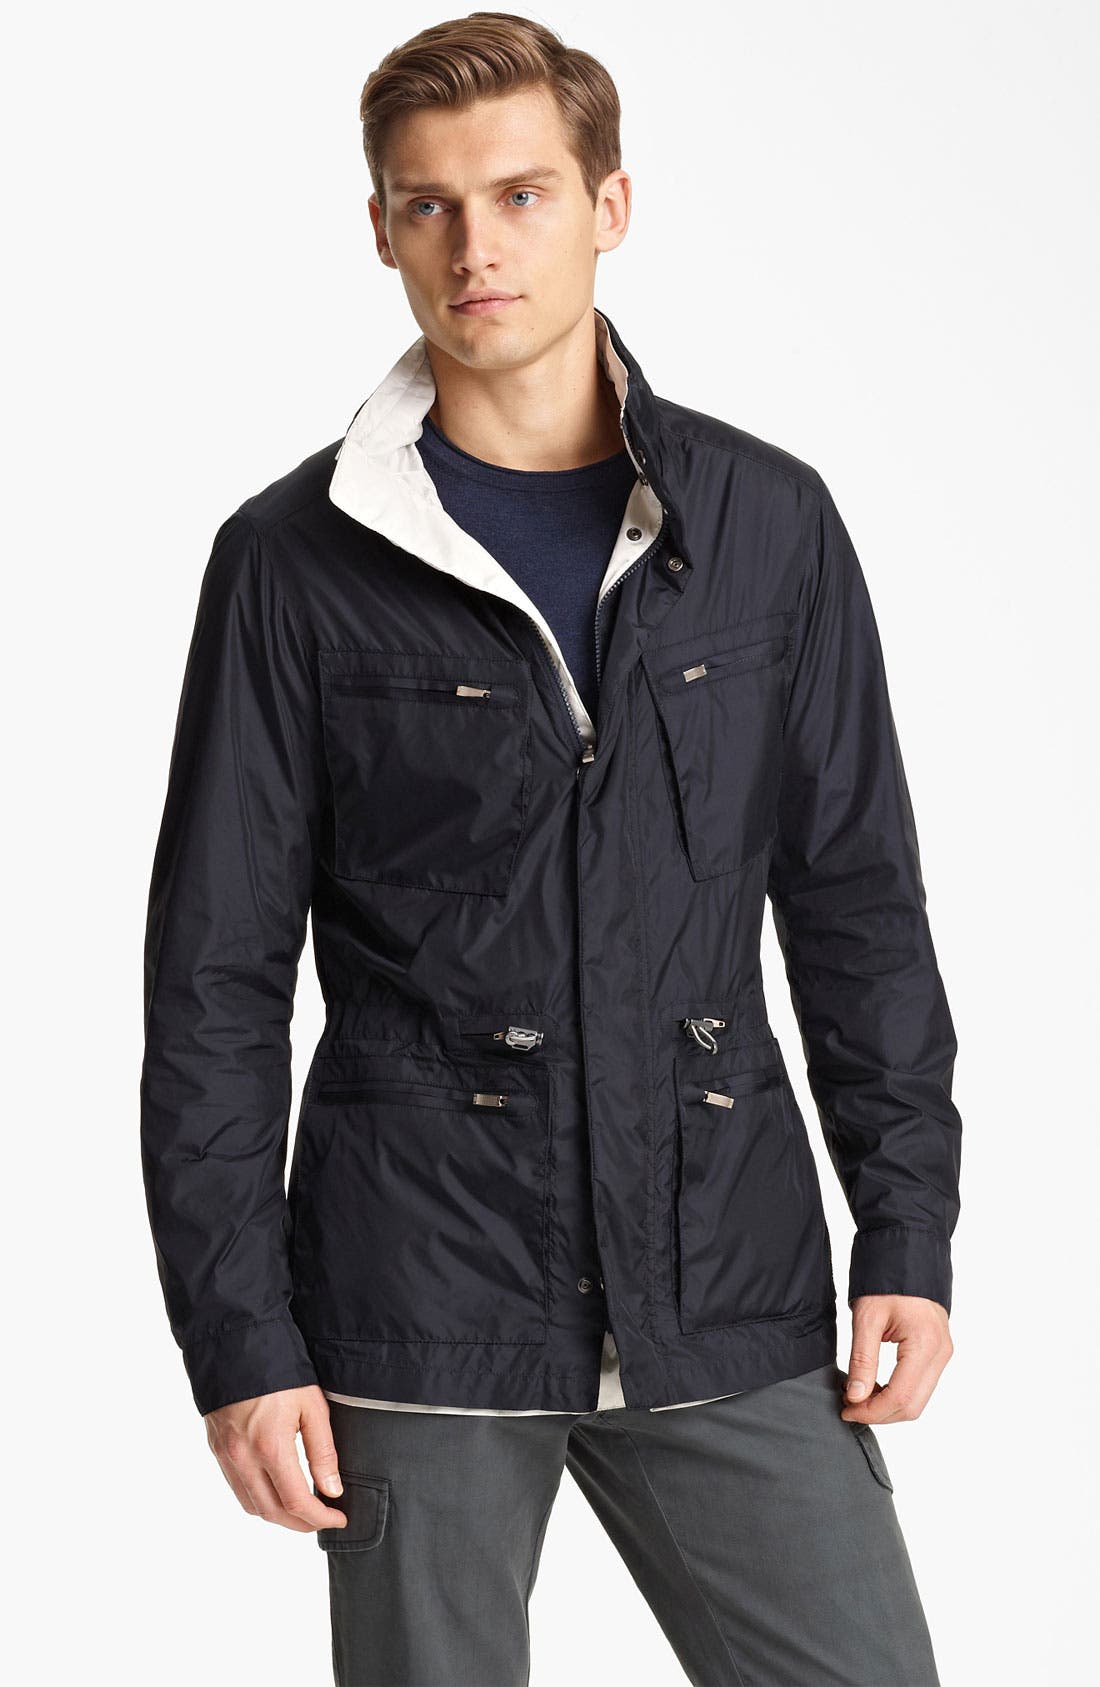 Alternate Image 1 Selected - Zegna Sport Reversible Jacket